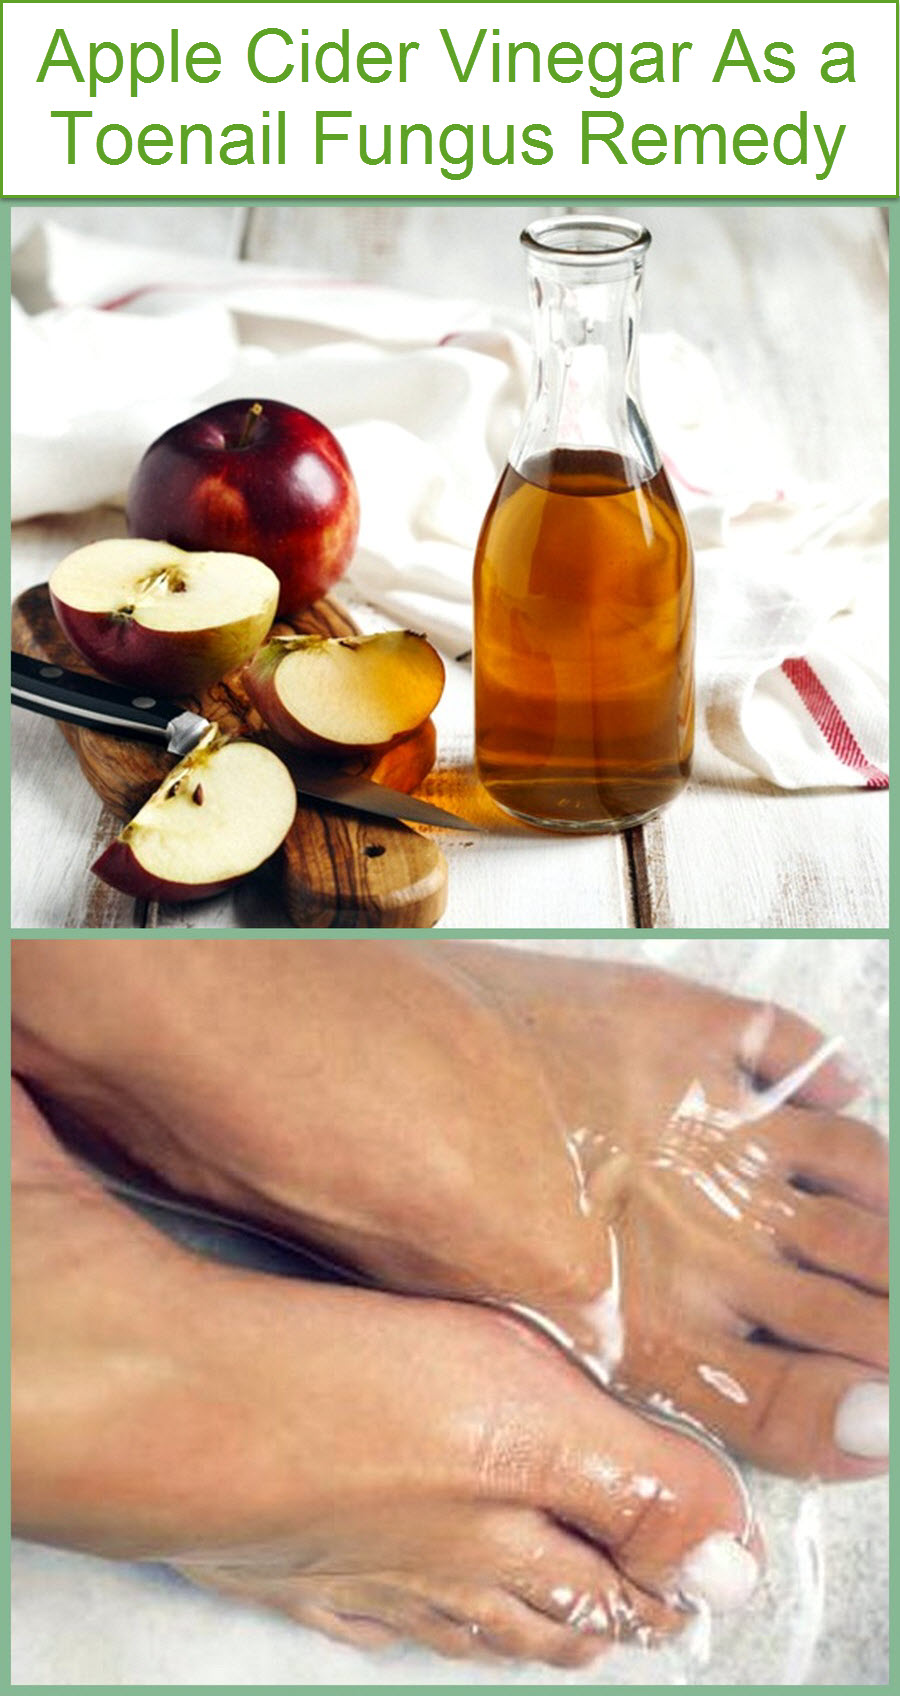 apple-cider-vinegar-as-a-toenail-fungus-remedy